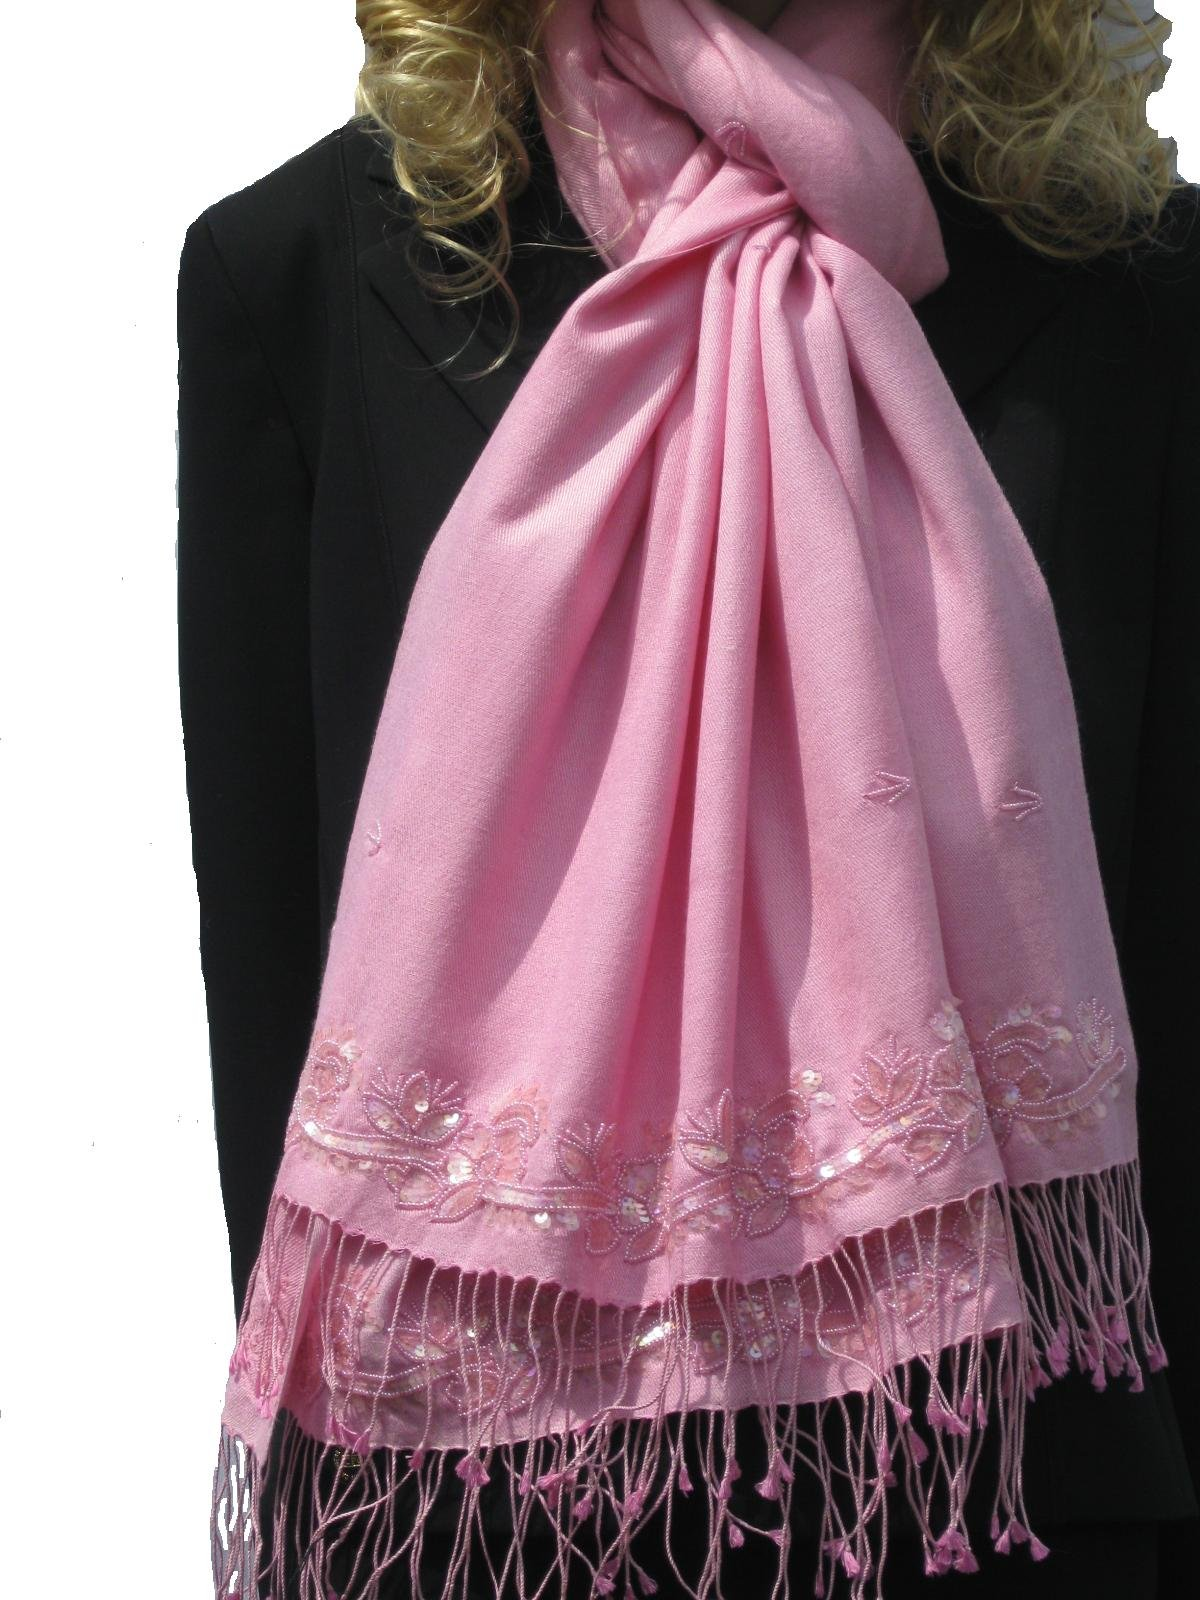 CASHMERE PASHMINA FANCY SHAWLS-at $79.00 (annual clearance) we still offer the best quality in luxuriously warm shawls, 78 inches long and 28 inches wide, approximately 70% Cashmere Pashmina with 30% Silk, in many vibrant colors, use as shawl, wrap & scar